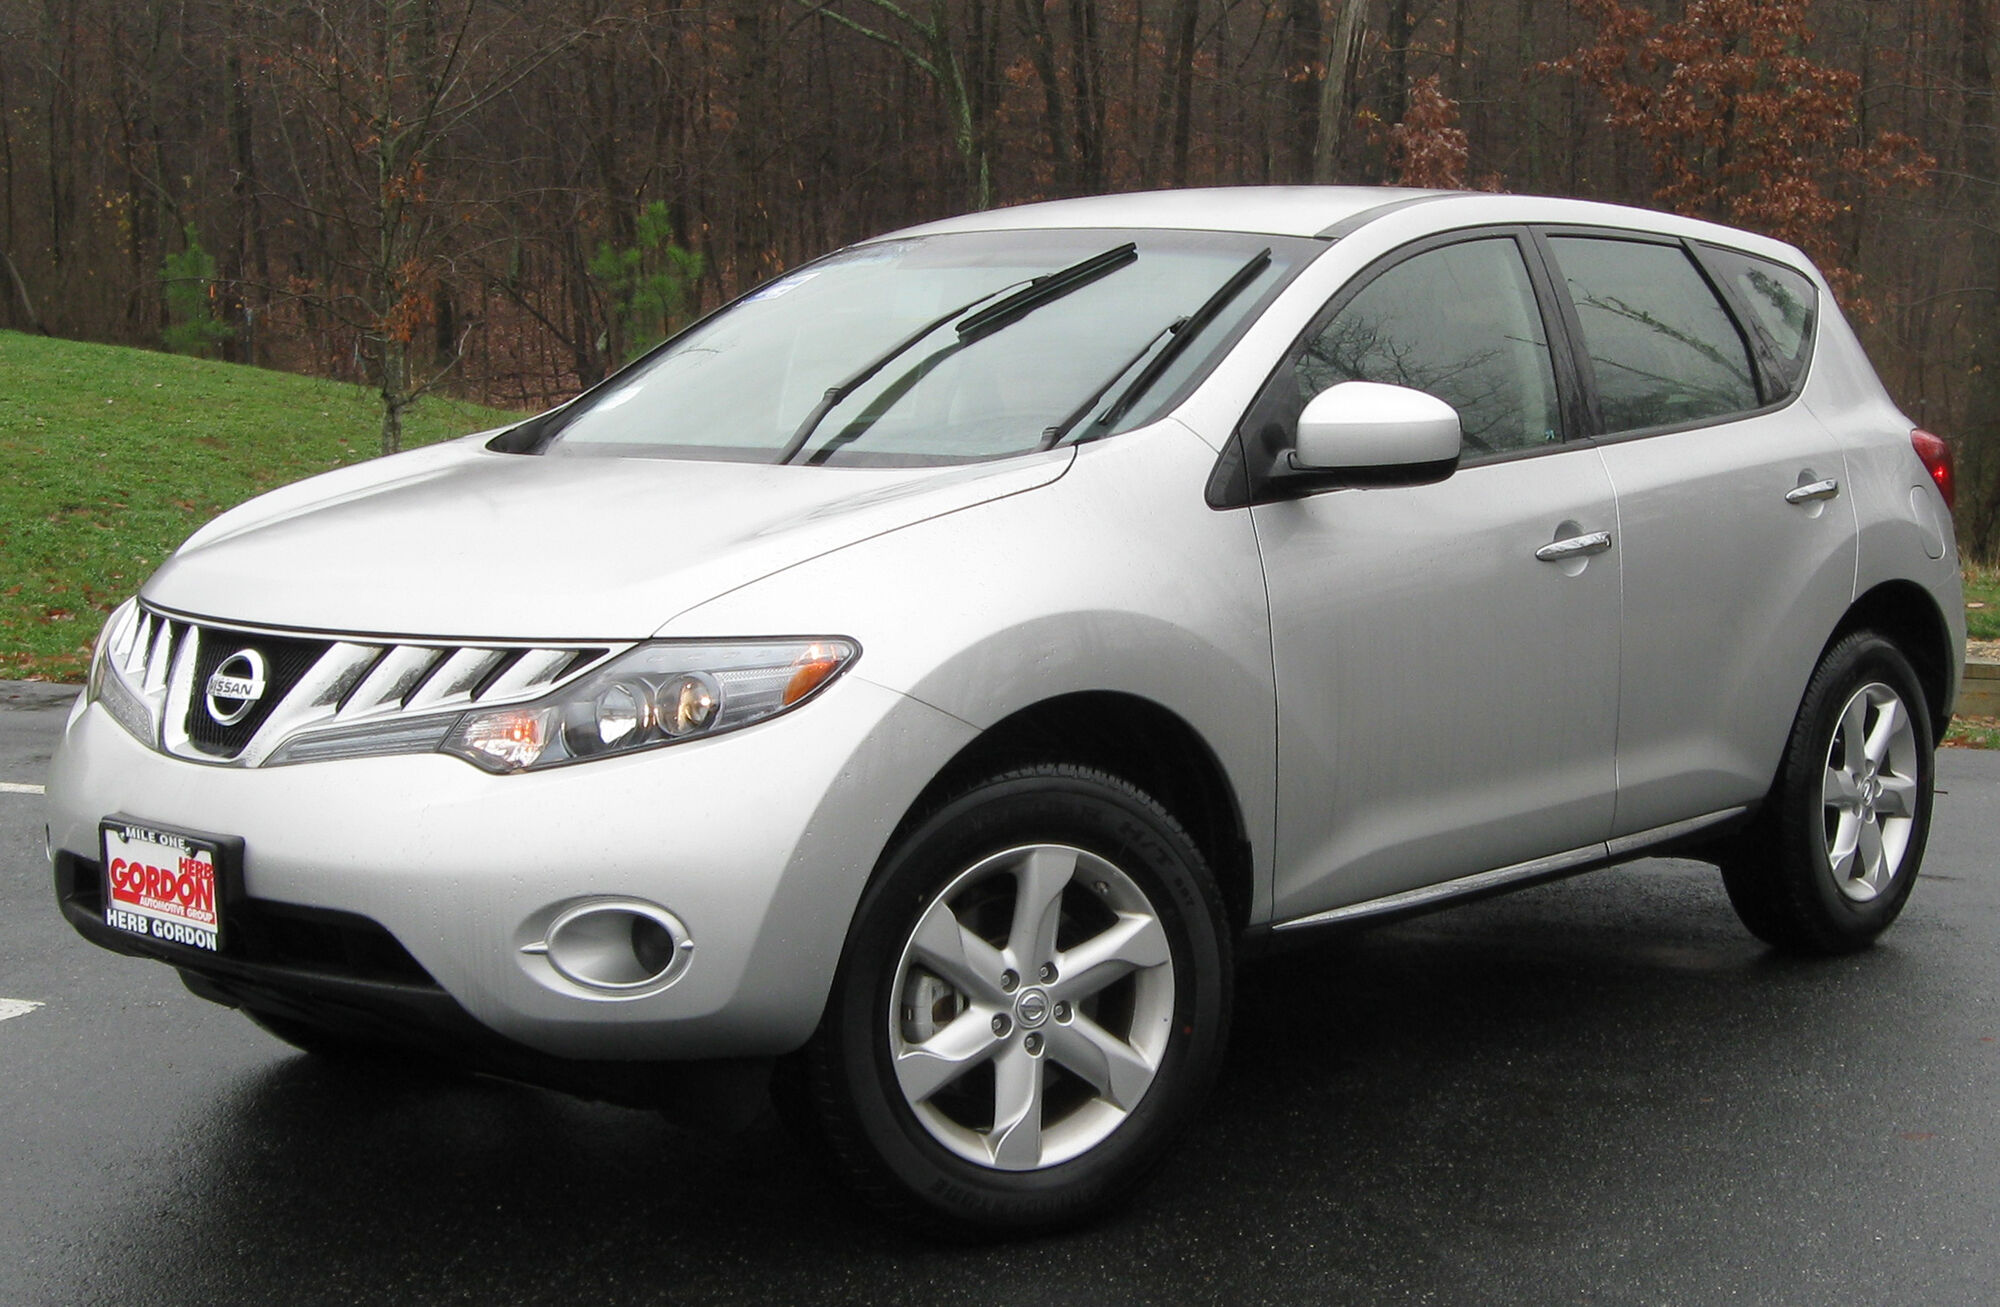 nissan murano tractor construction plant wiki fandom powered by wikia. Black Bedroom Furniture Sets. Home Design Ideas